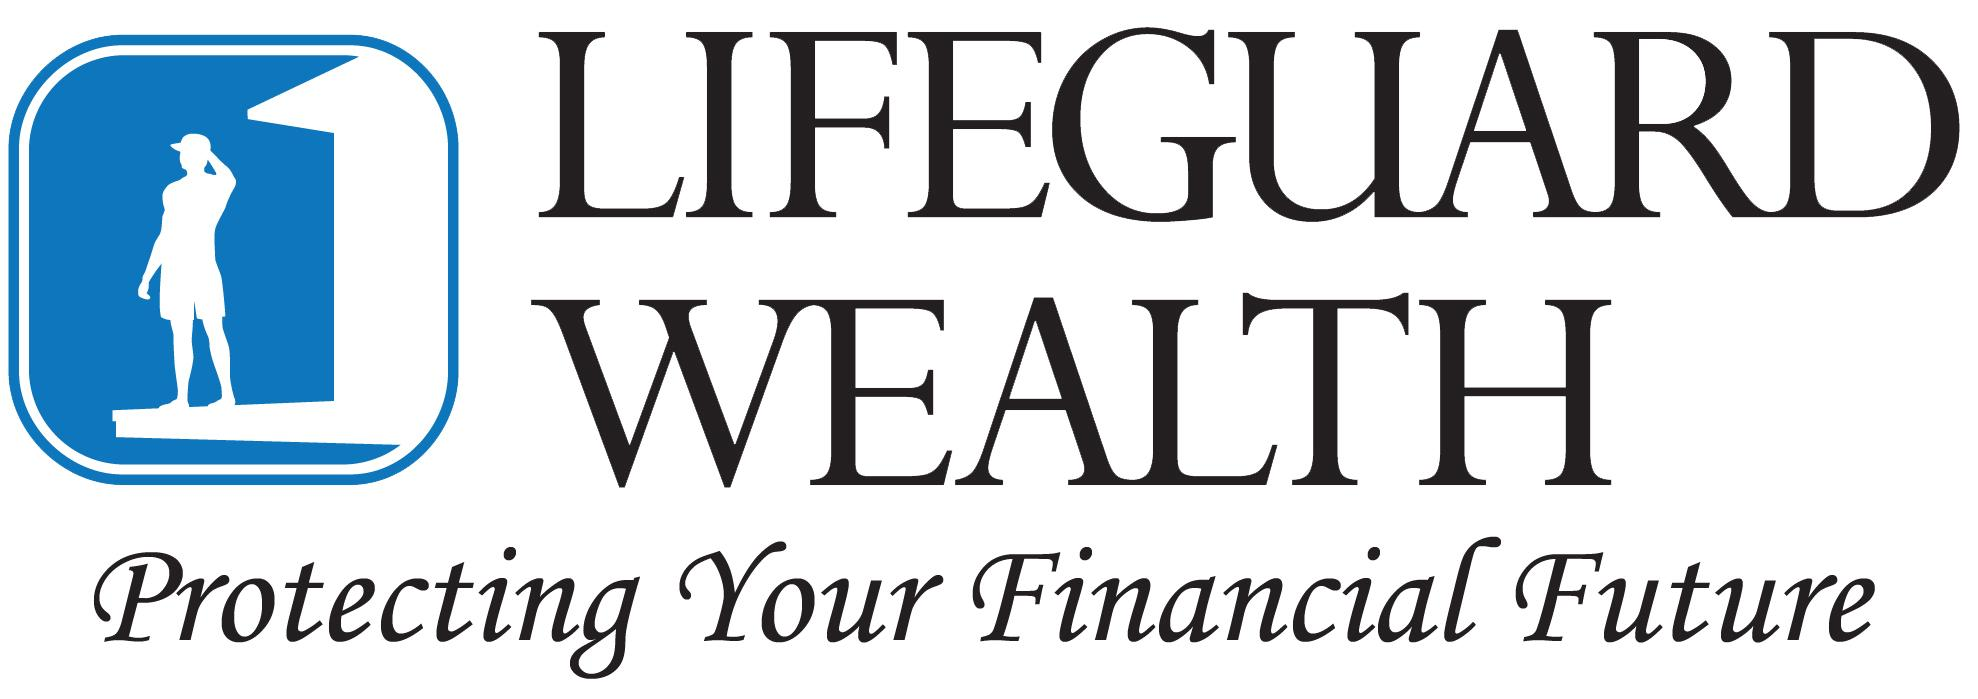 Lifeguard Wealth | Protecting Your Financial Future